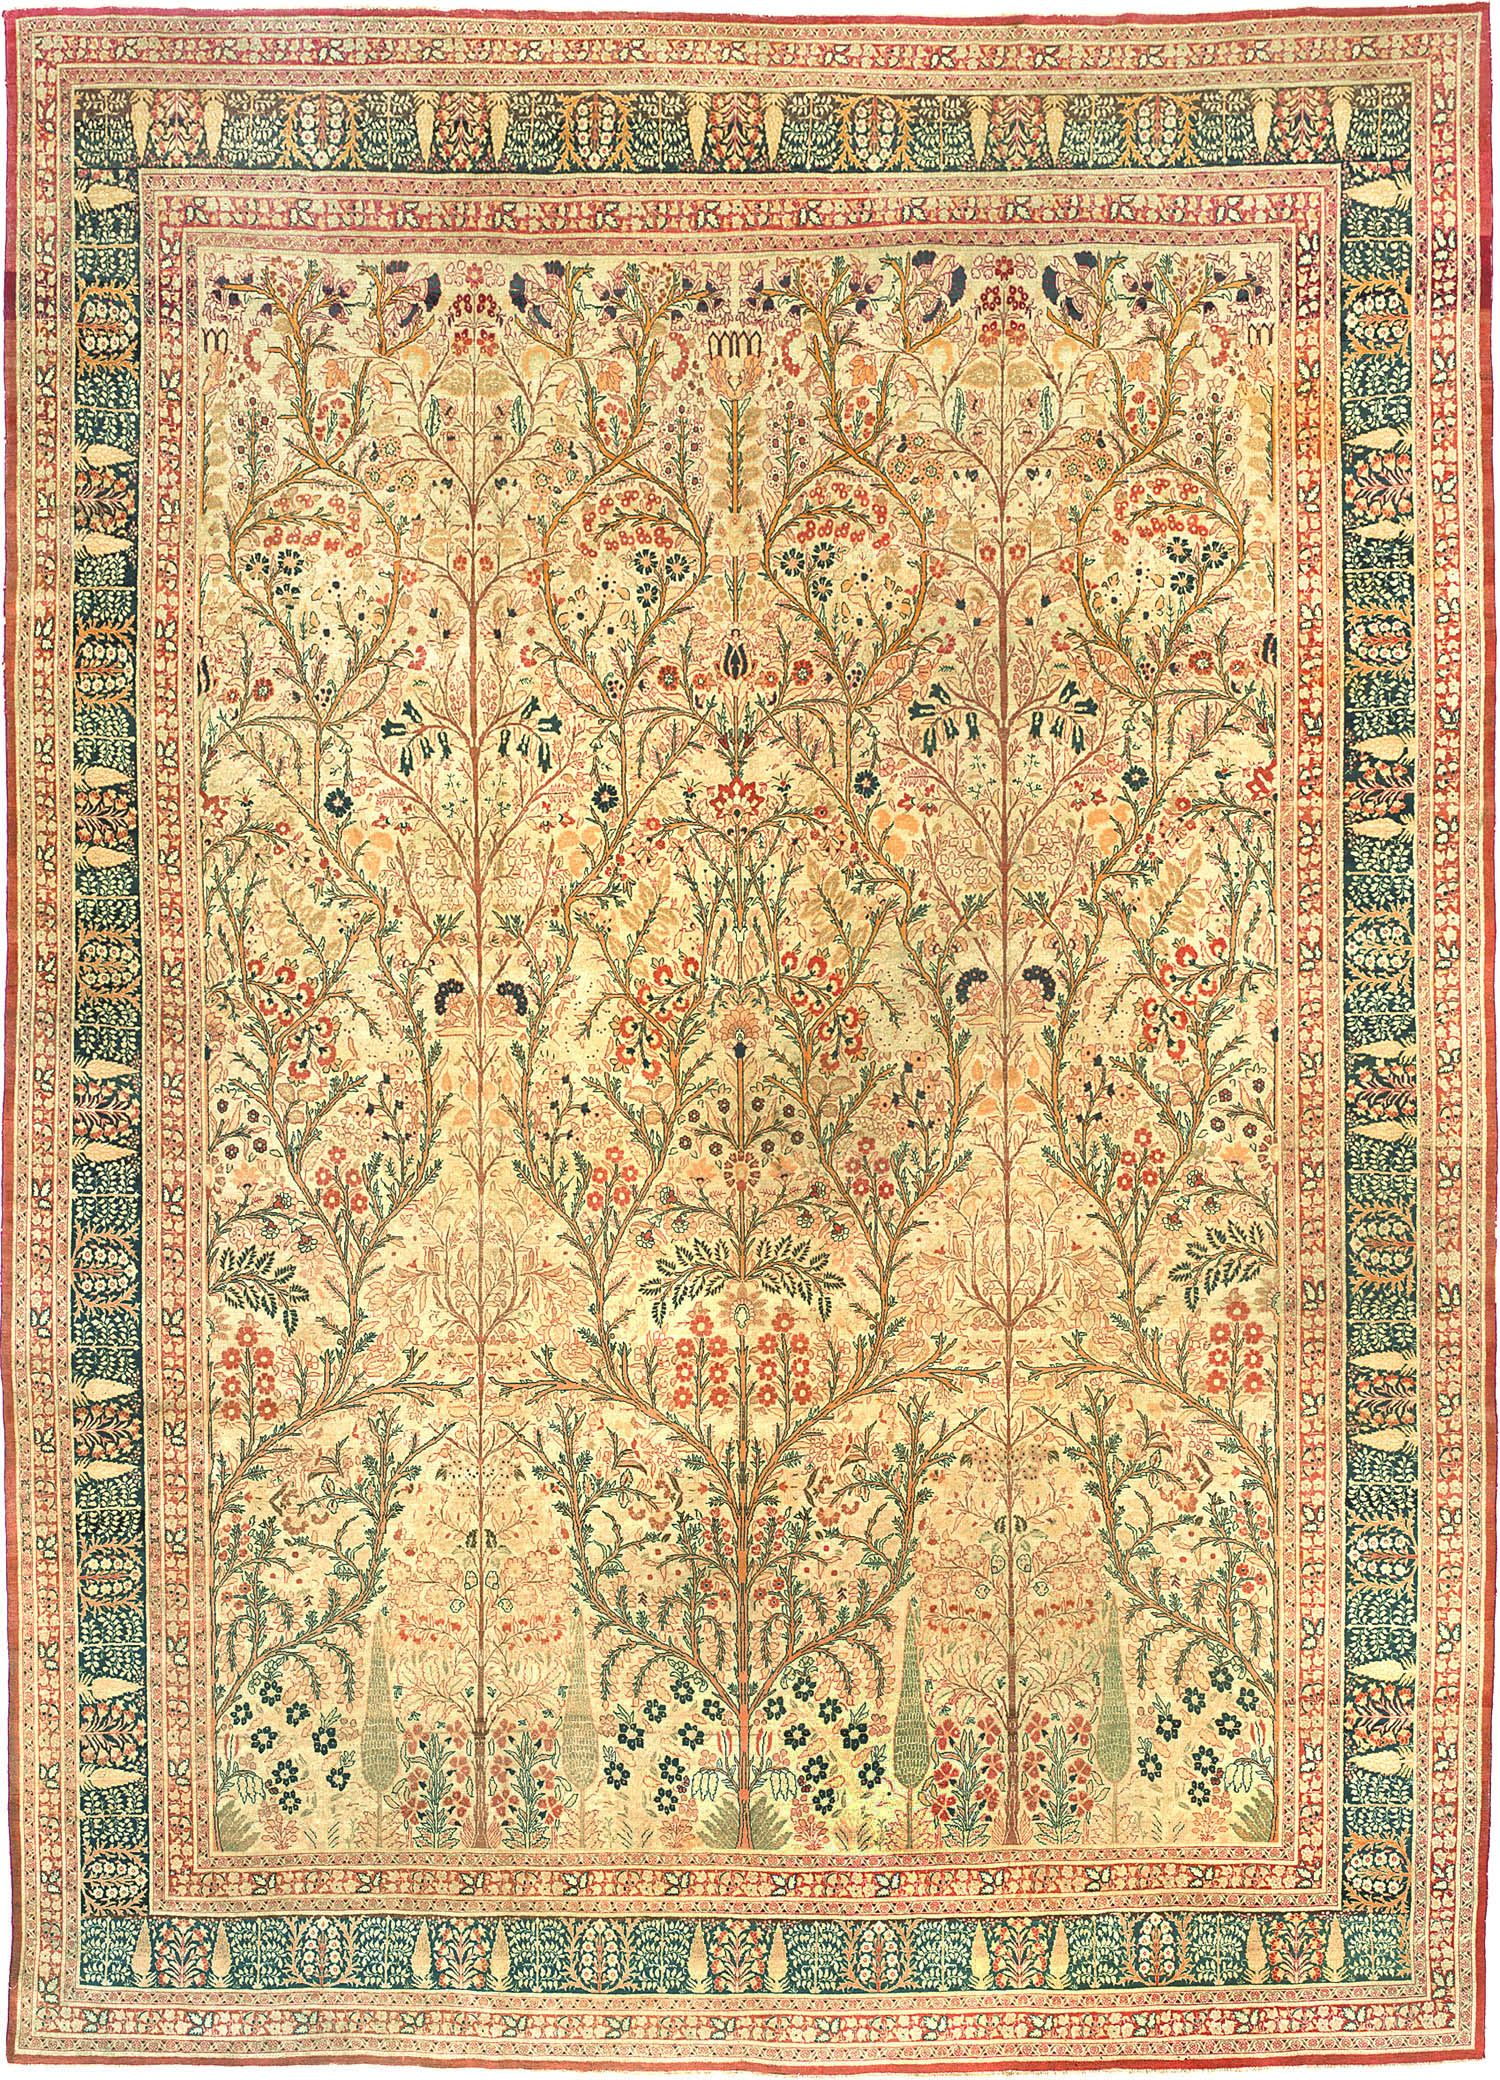 Antique tabriz persian rug 3247 detail large view by for Alfombras orientales antiguas